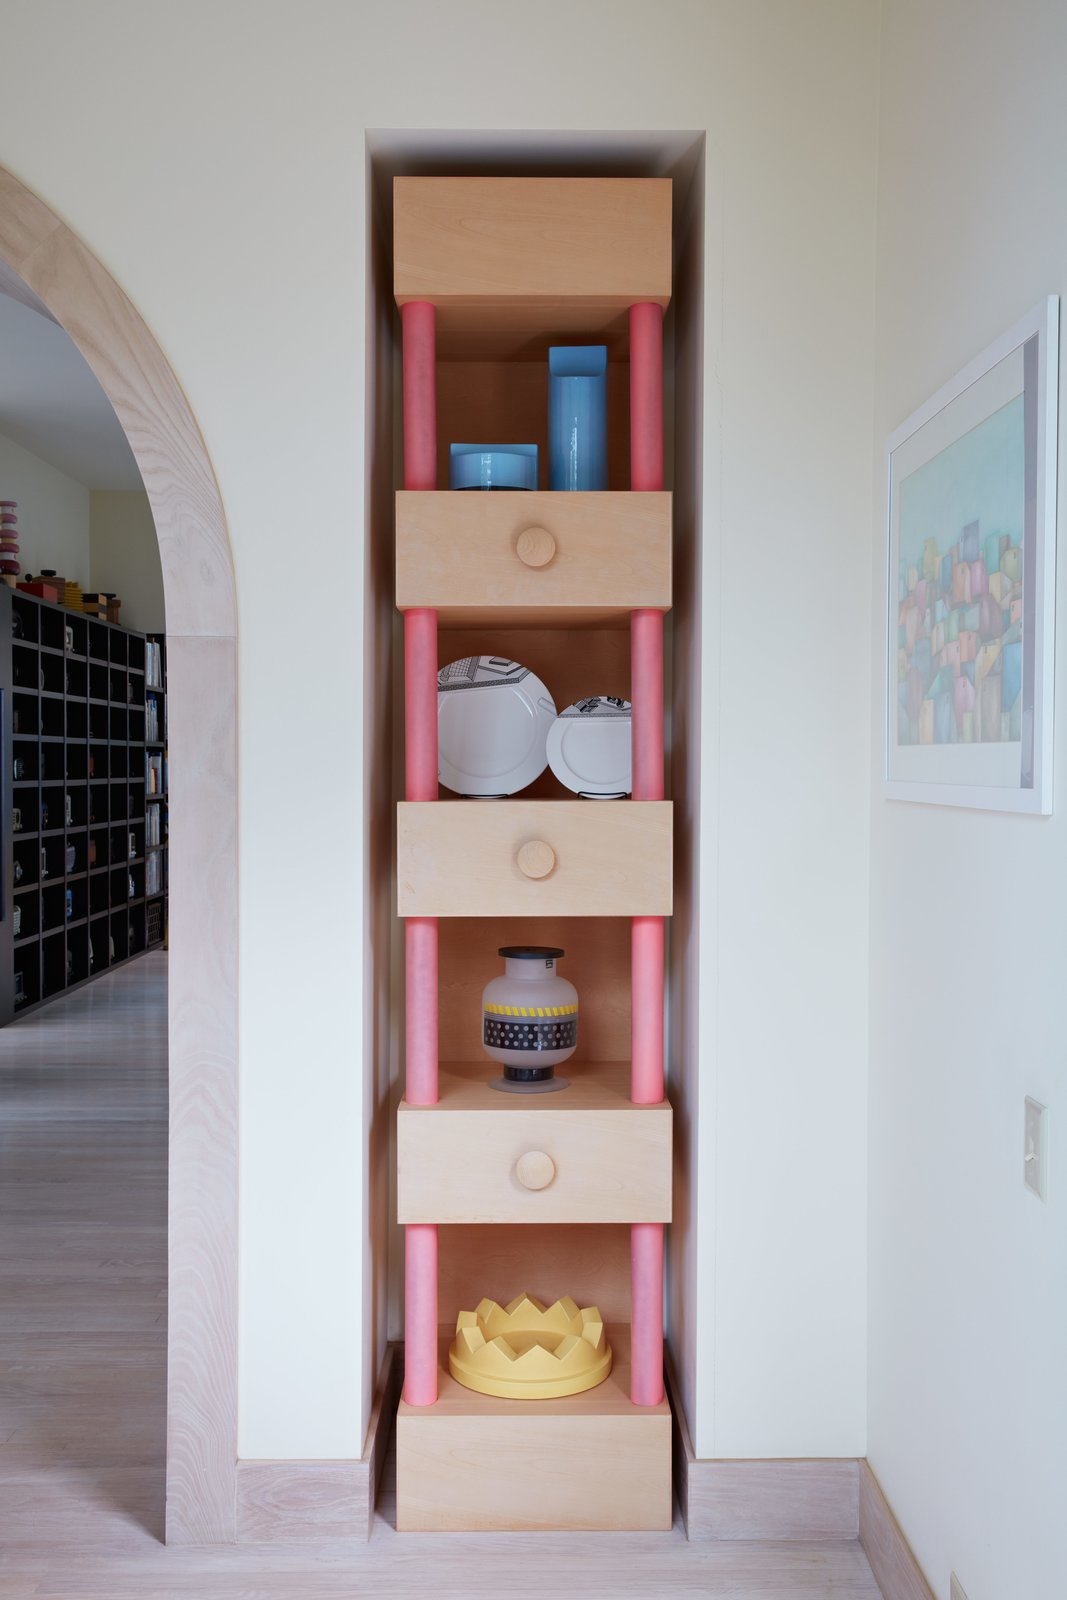 Storage Room and Shelves Storage Type A tall custom niche displays various tabletop items Sottsass designed for brands Habitat, Memphis, Egizia, and Anthologie Quartett.  Photo 5 of 14 in Thank Sottsass for the Most Memphis House Imaginable